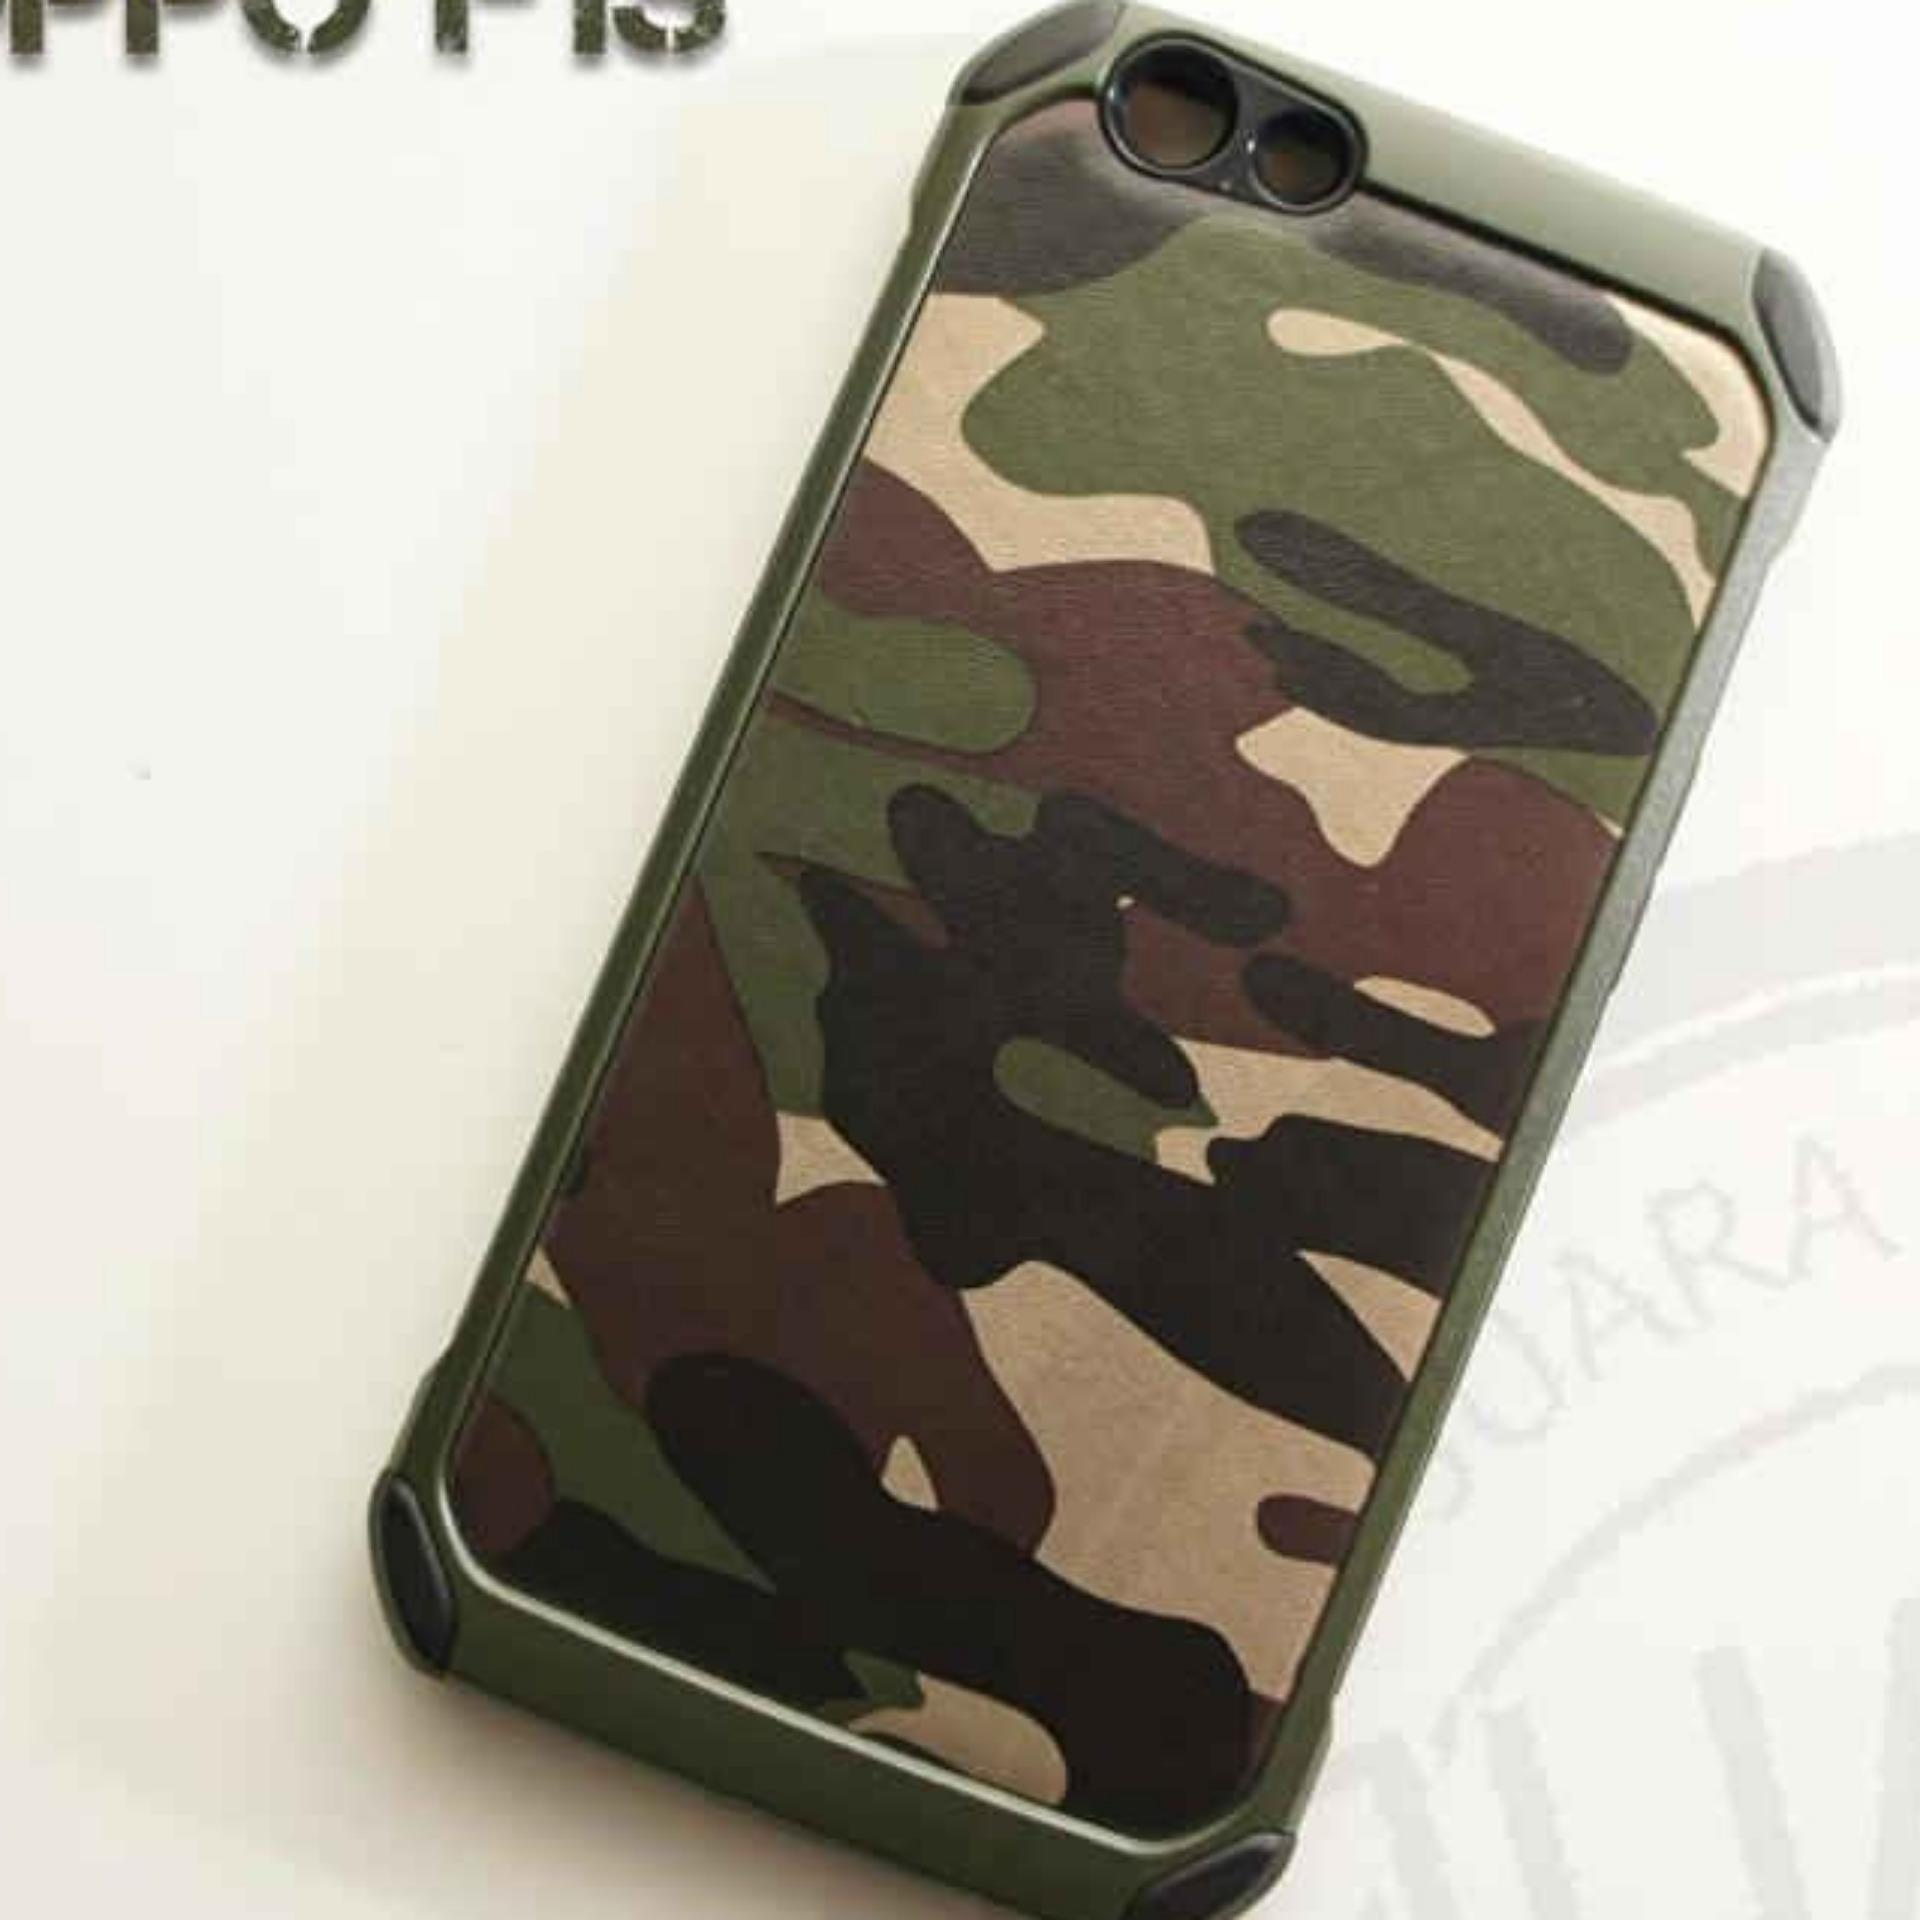 Jual Case Military Army High Protection For Oppo A59 Oppo F1S Army Hijau Case Online